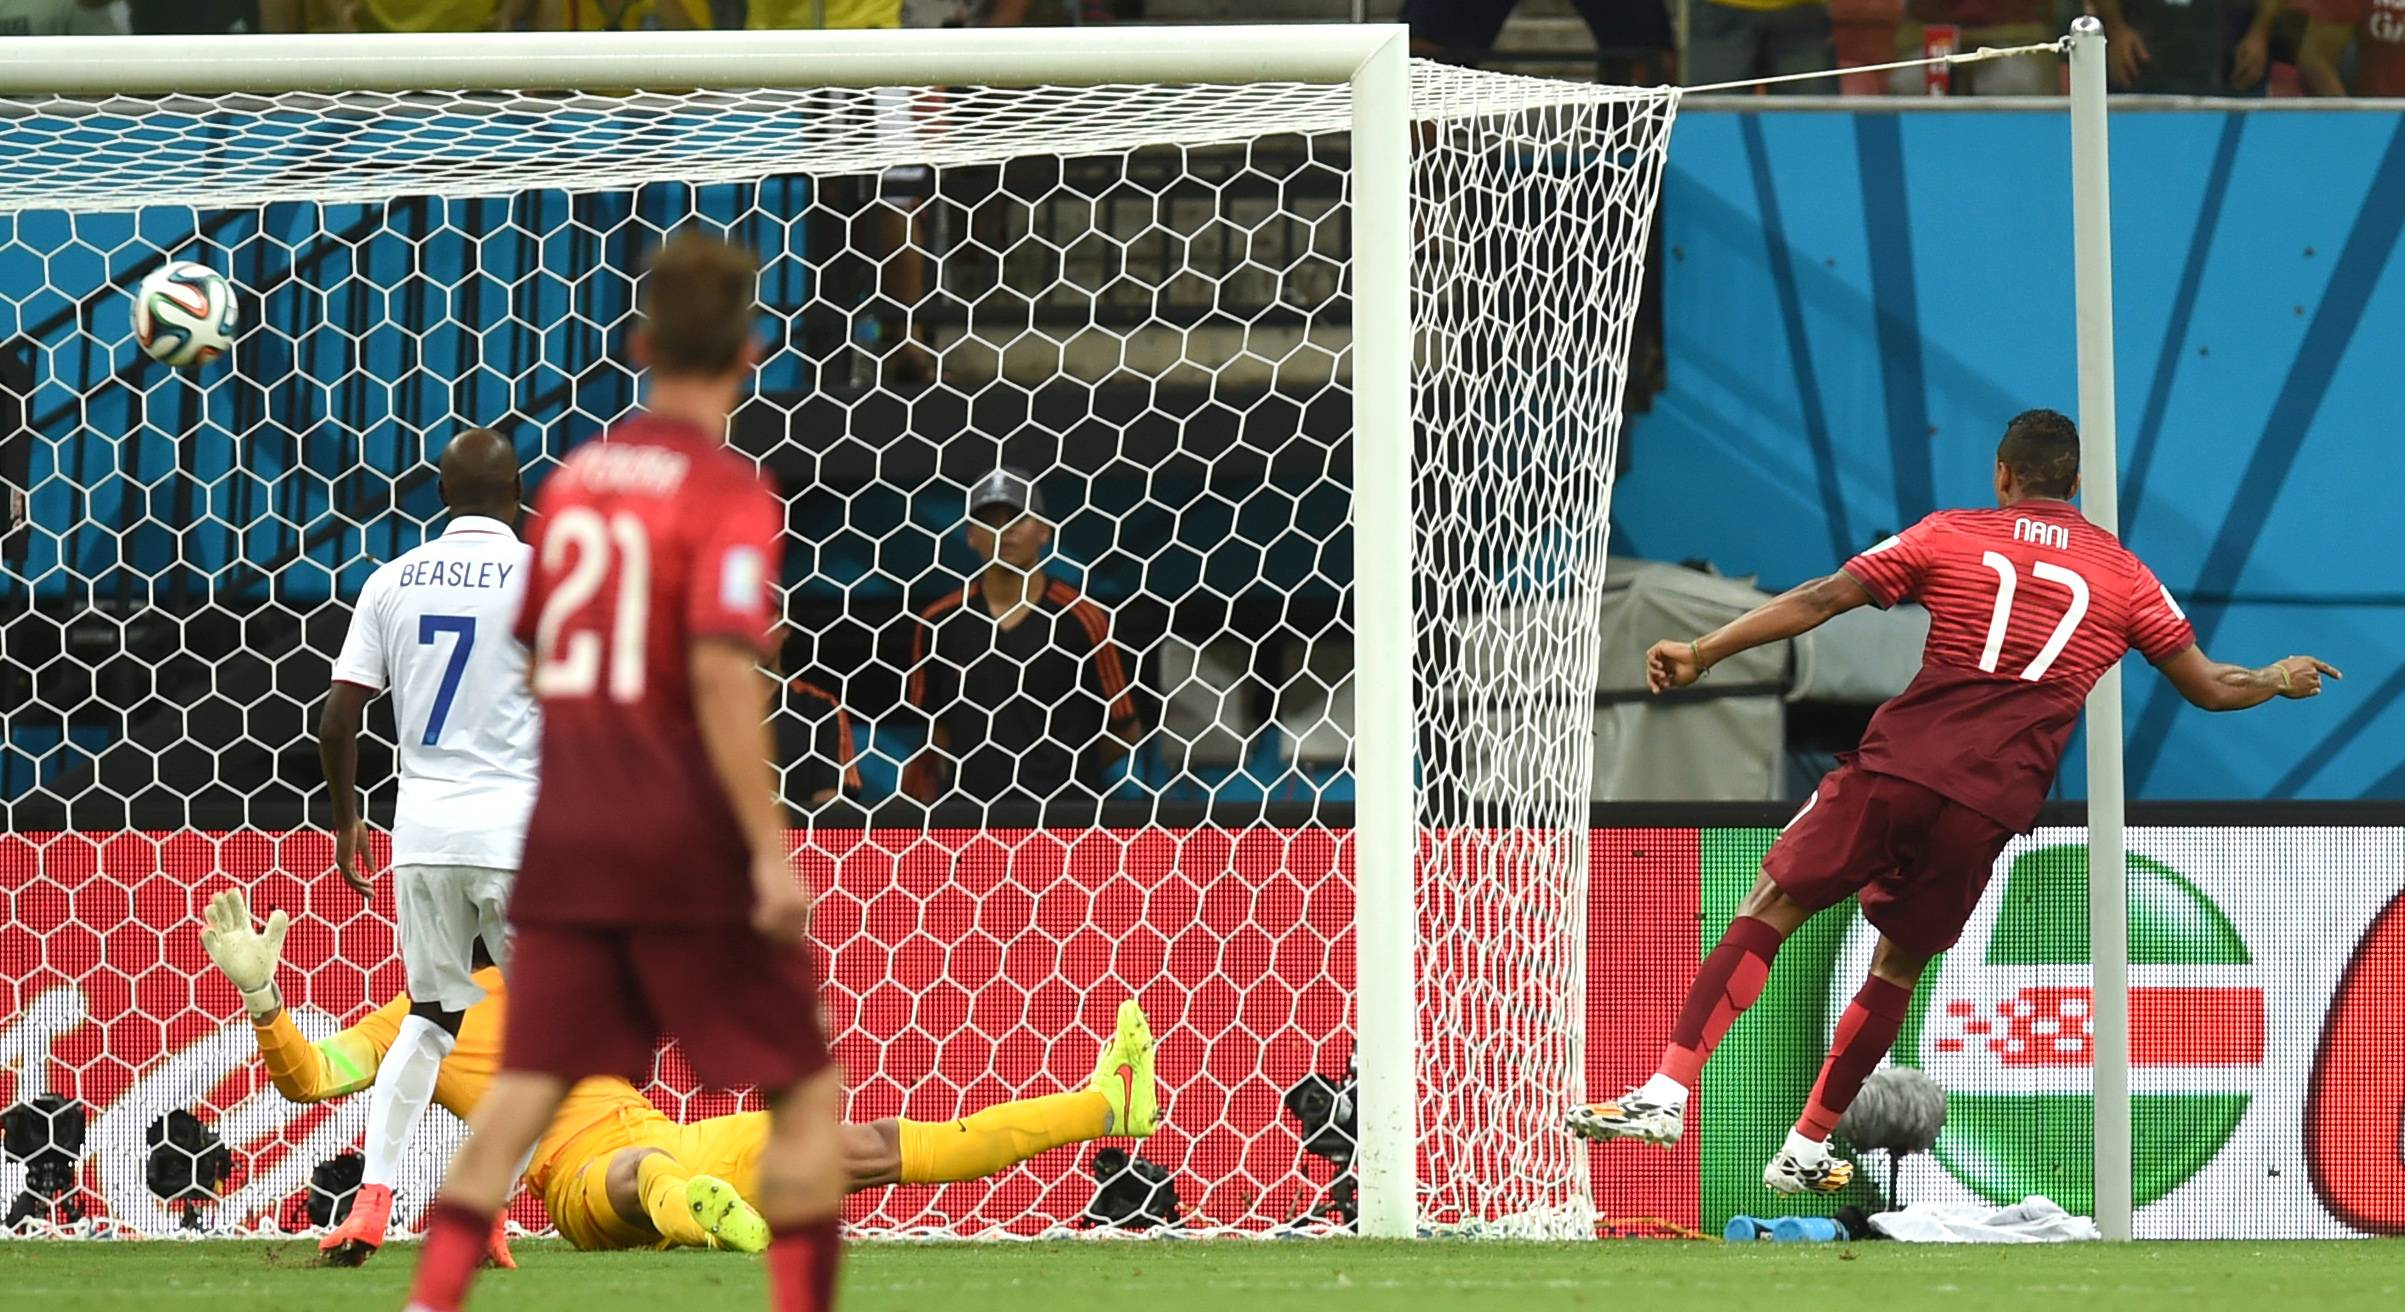 Portugal battles back to draw with U.S.